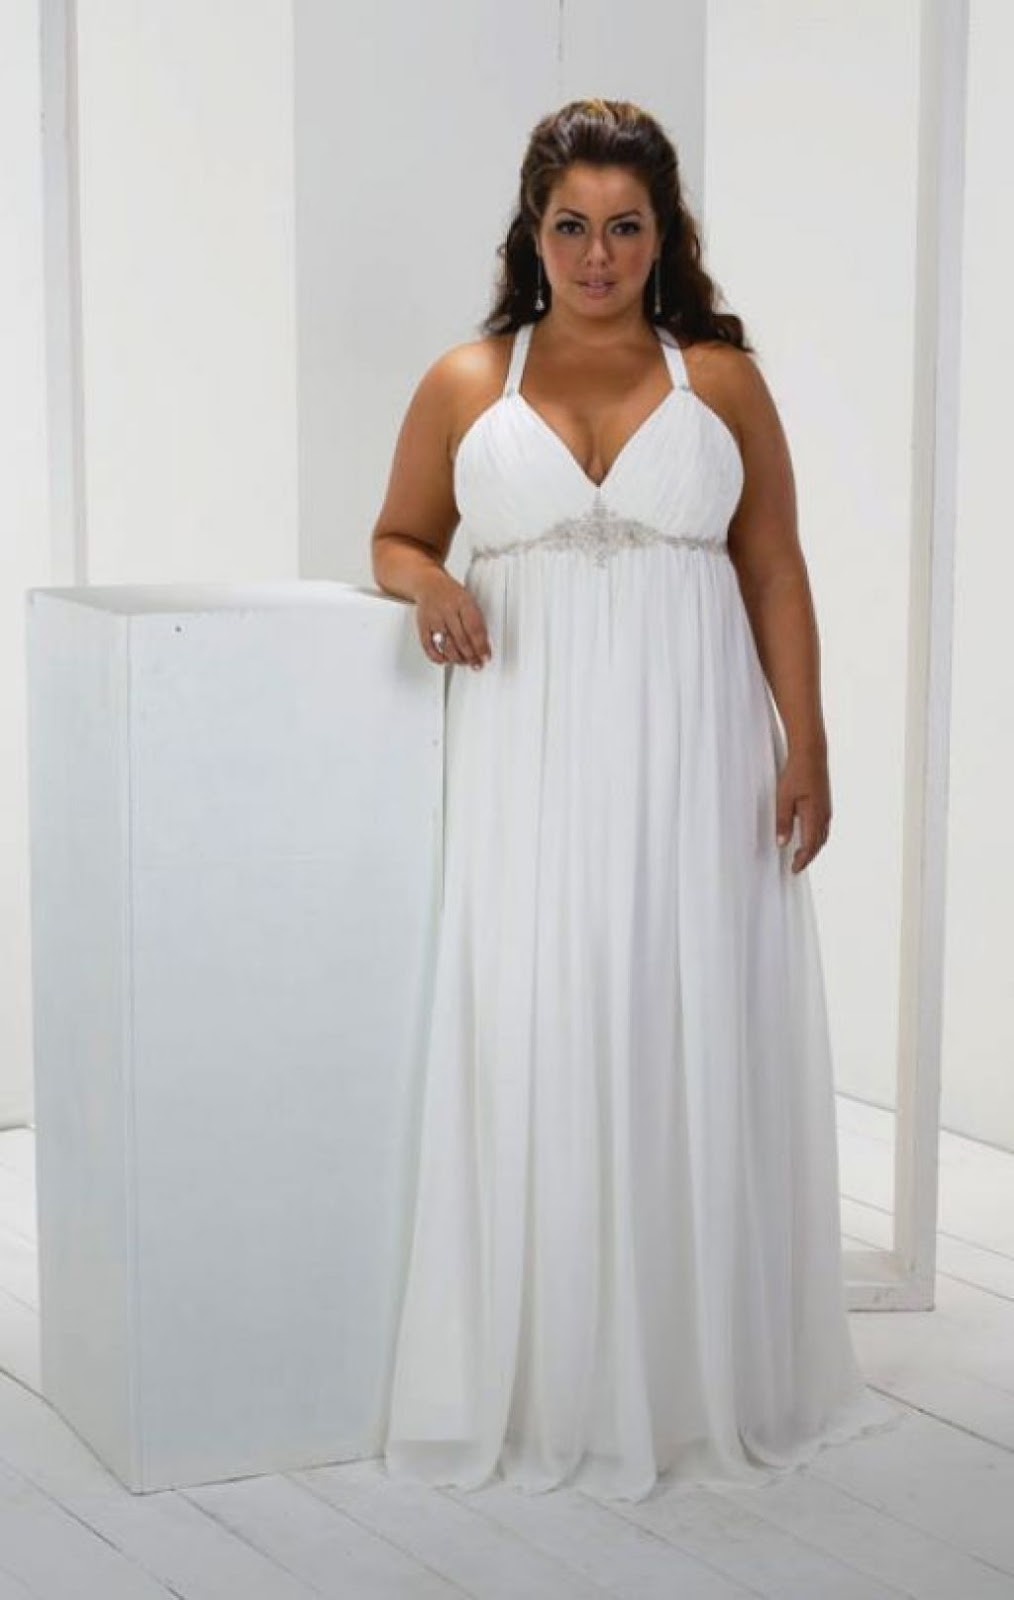 Plus size beach wedding dresses 2015 for Wedding dress plus size cheap